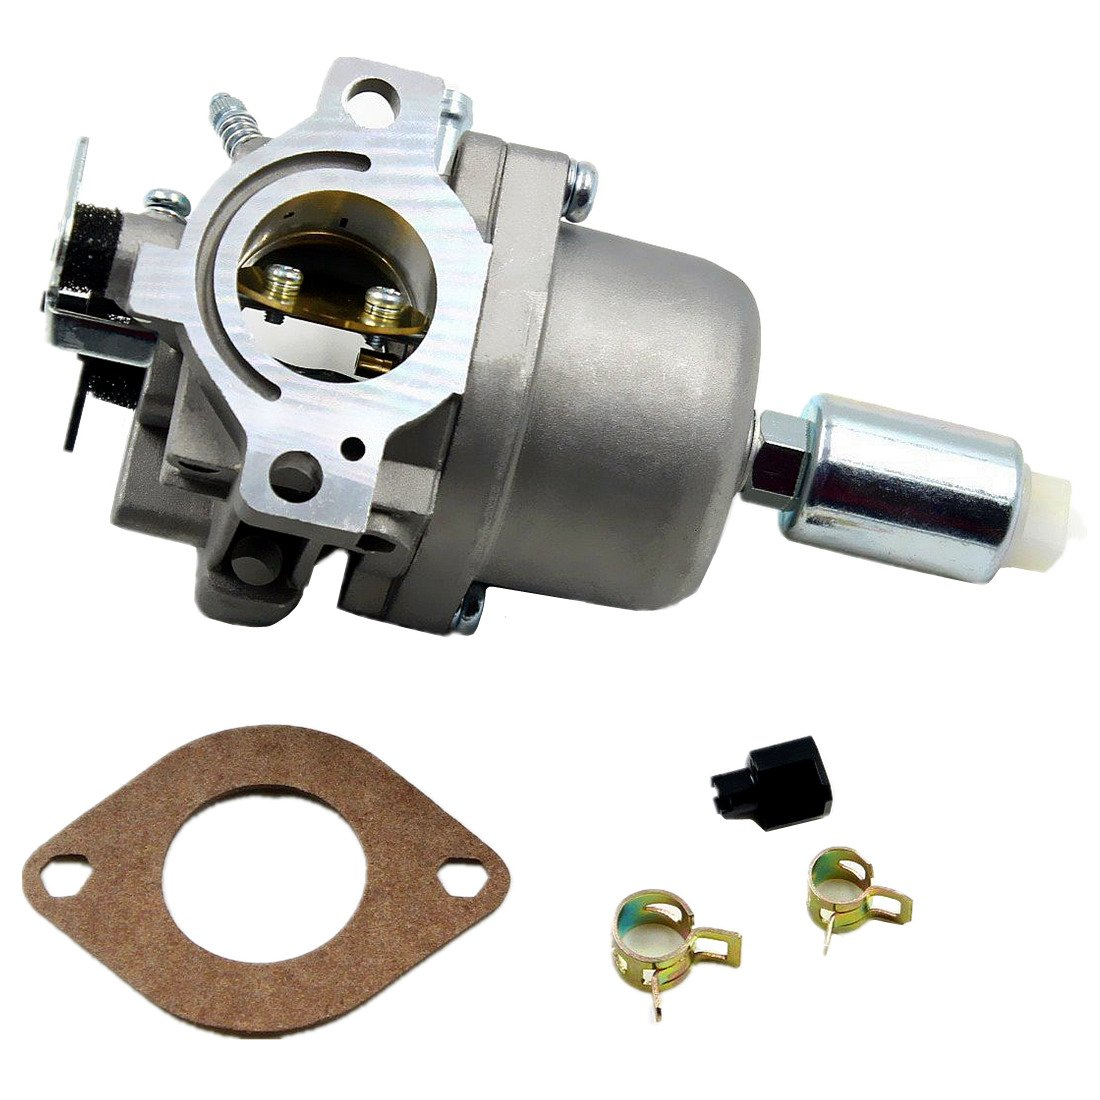 iFJF 799727 Carburetor for Briggs & Stratton 698620 14hp 15hp 16hp 17hp 18hp Intek Engines